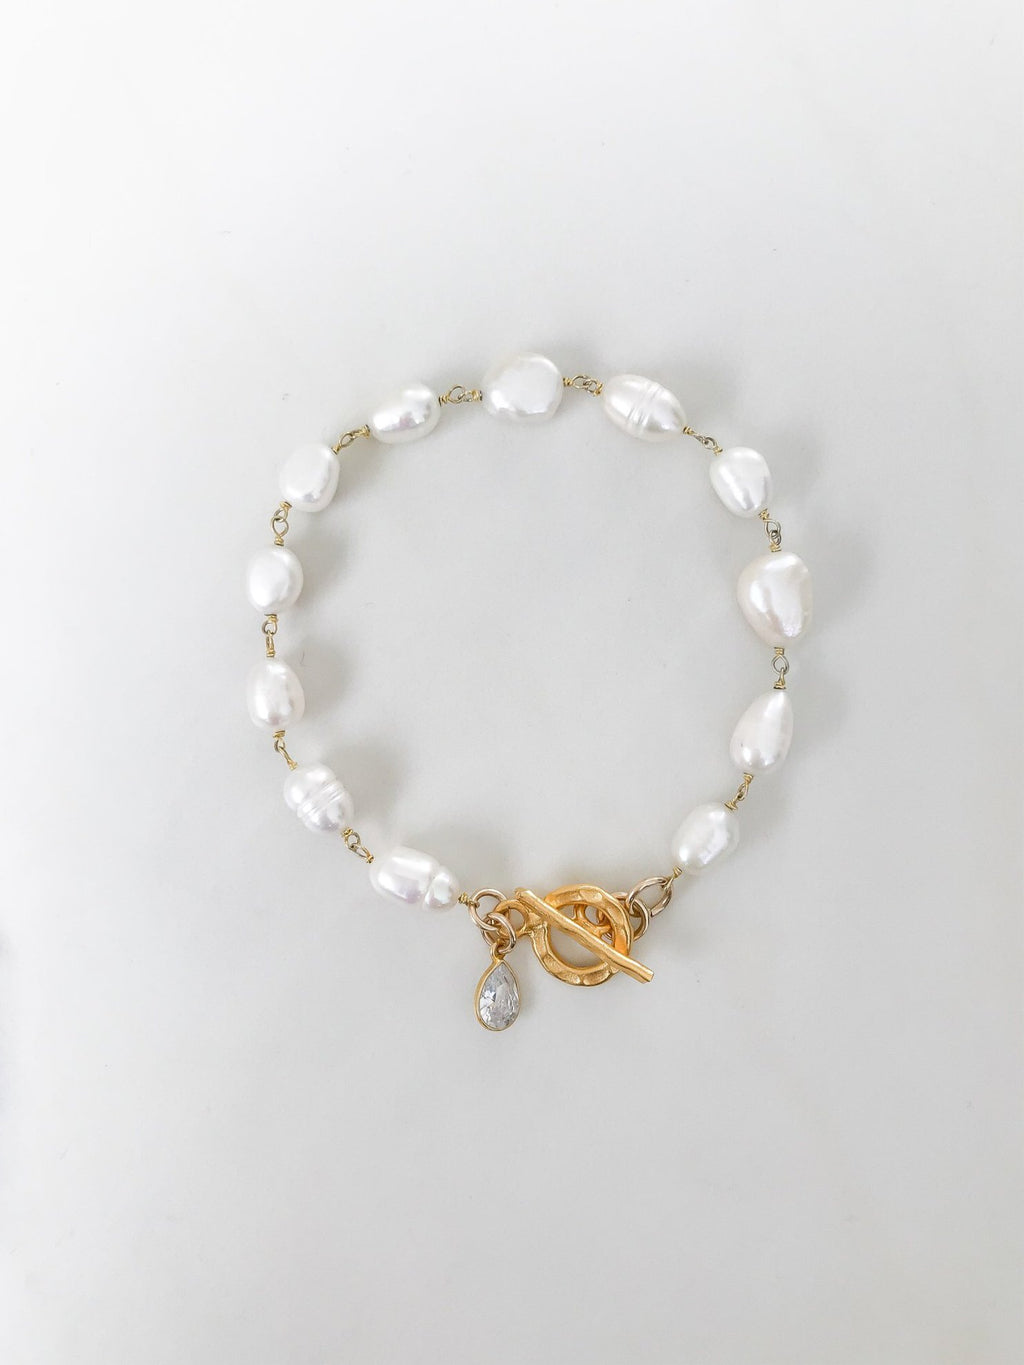 Pearl with gold toggle clasp